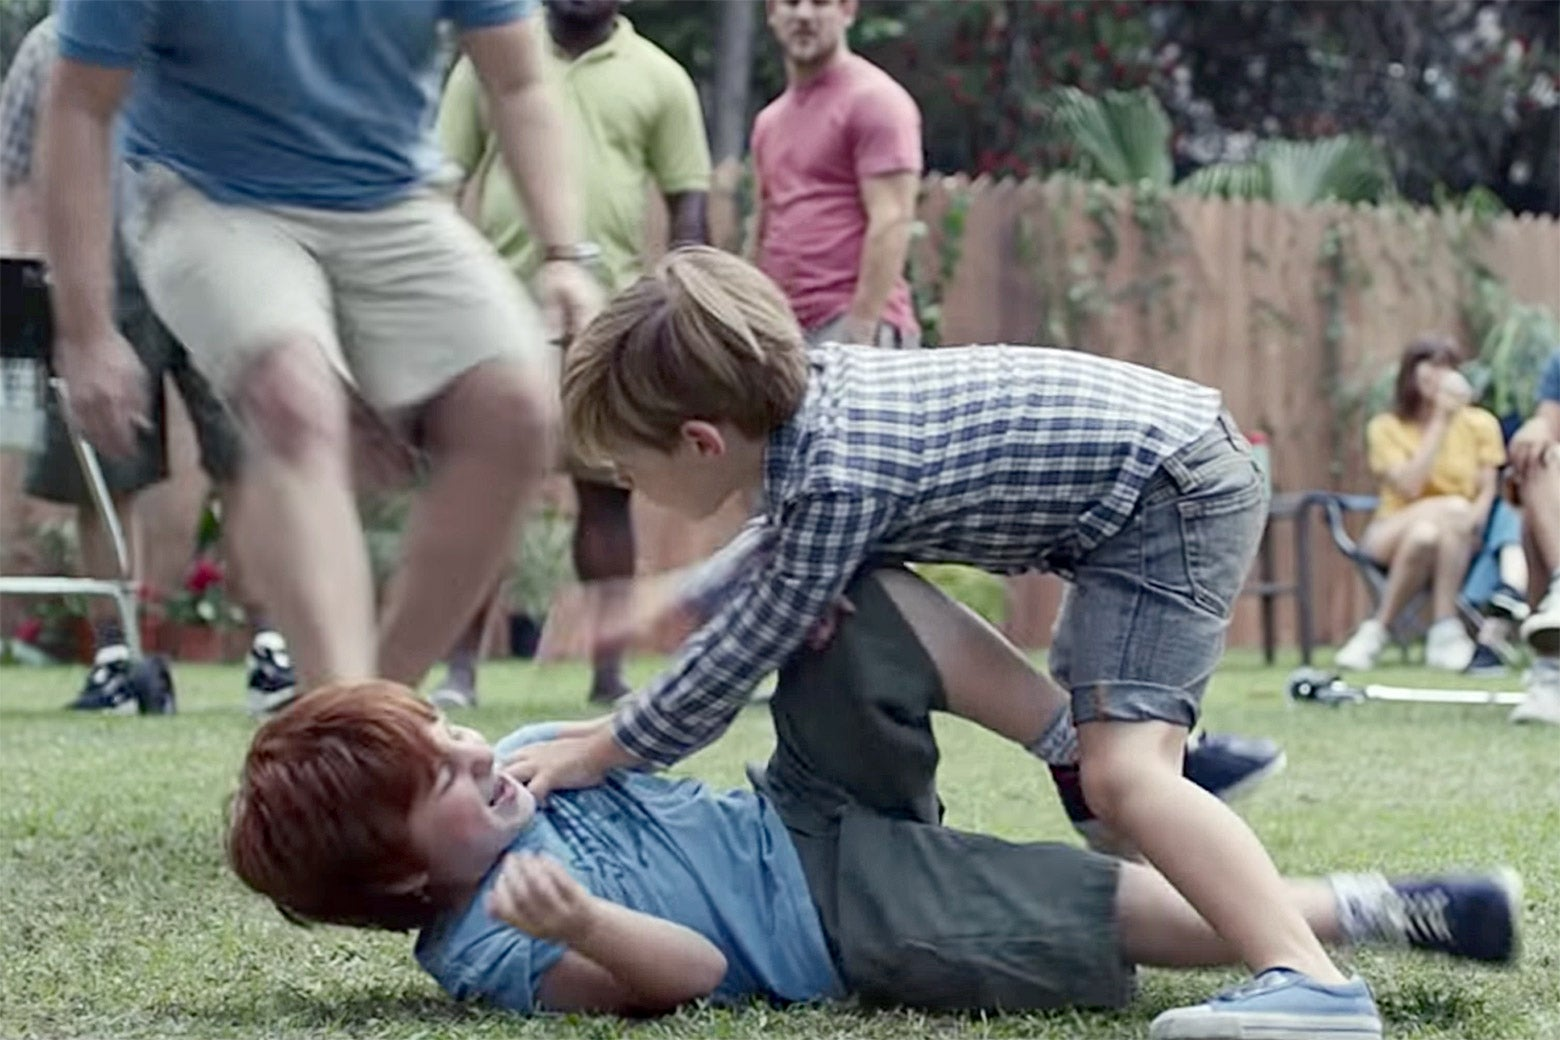 Boys fighting in a Gillette ad